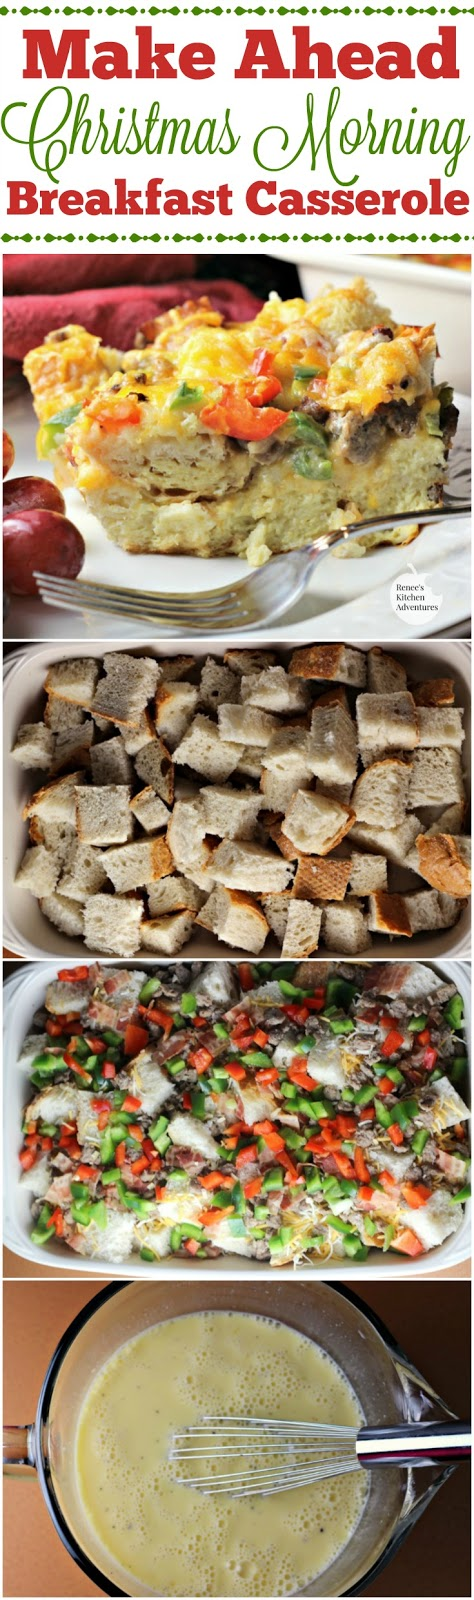 Make Ahead Christmas Morning Breakfast Casserole | by Renee's Kitchen Adventures - Easy breakfast or brunch recipe for a wonderful casserole that is all prepped the night before!  You must try this traditional family recipe!